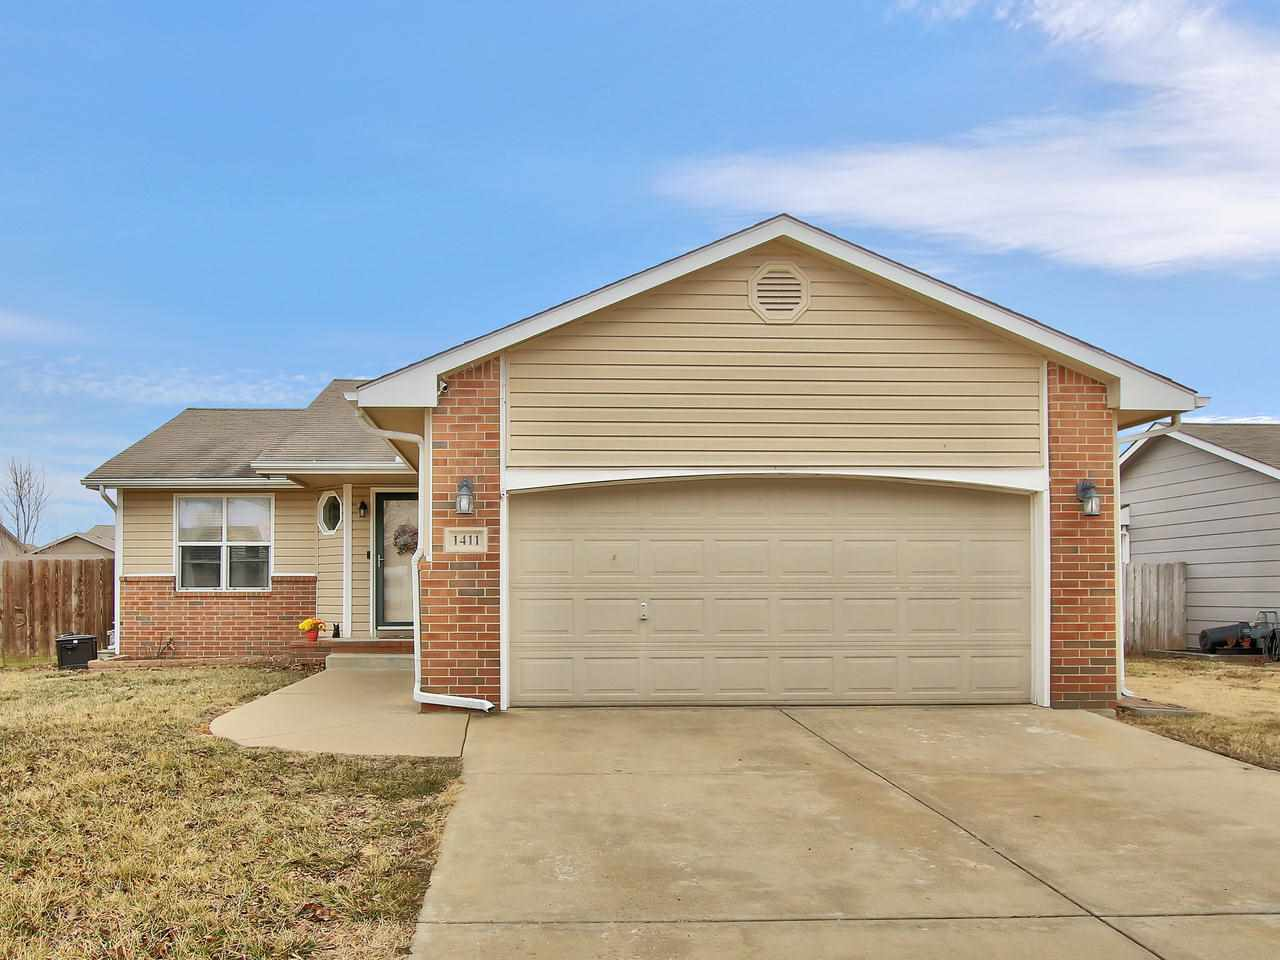 This home has a bathroom for every bedroom! 3 bedroom and 3 bath home with a finished basement. You